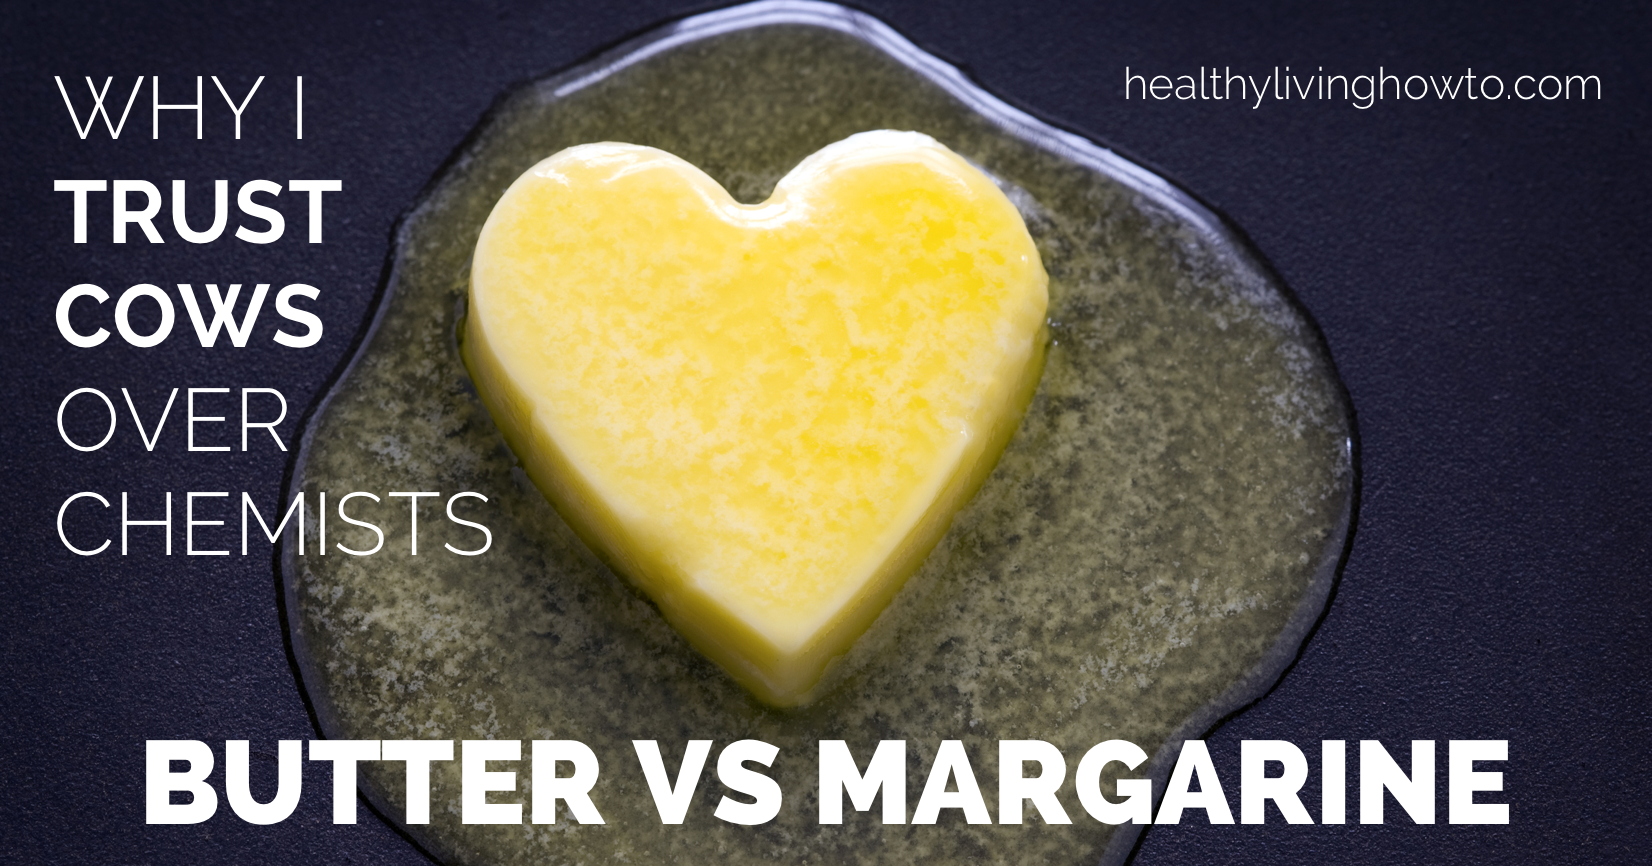 Butter Vs Margaine. Why I Trust Cows Over Chemists! | healthylivinghowto.com